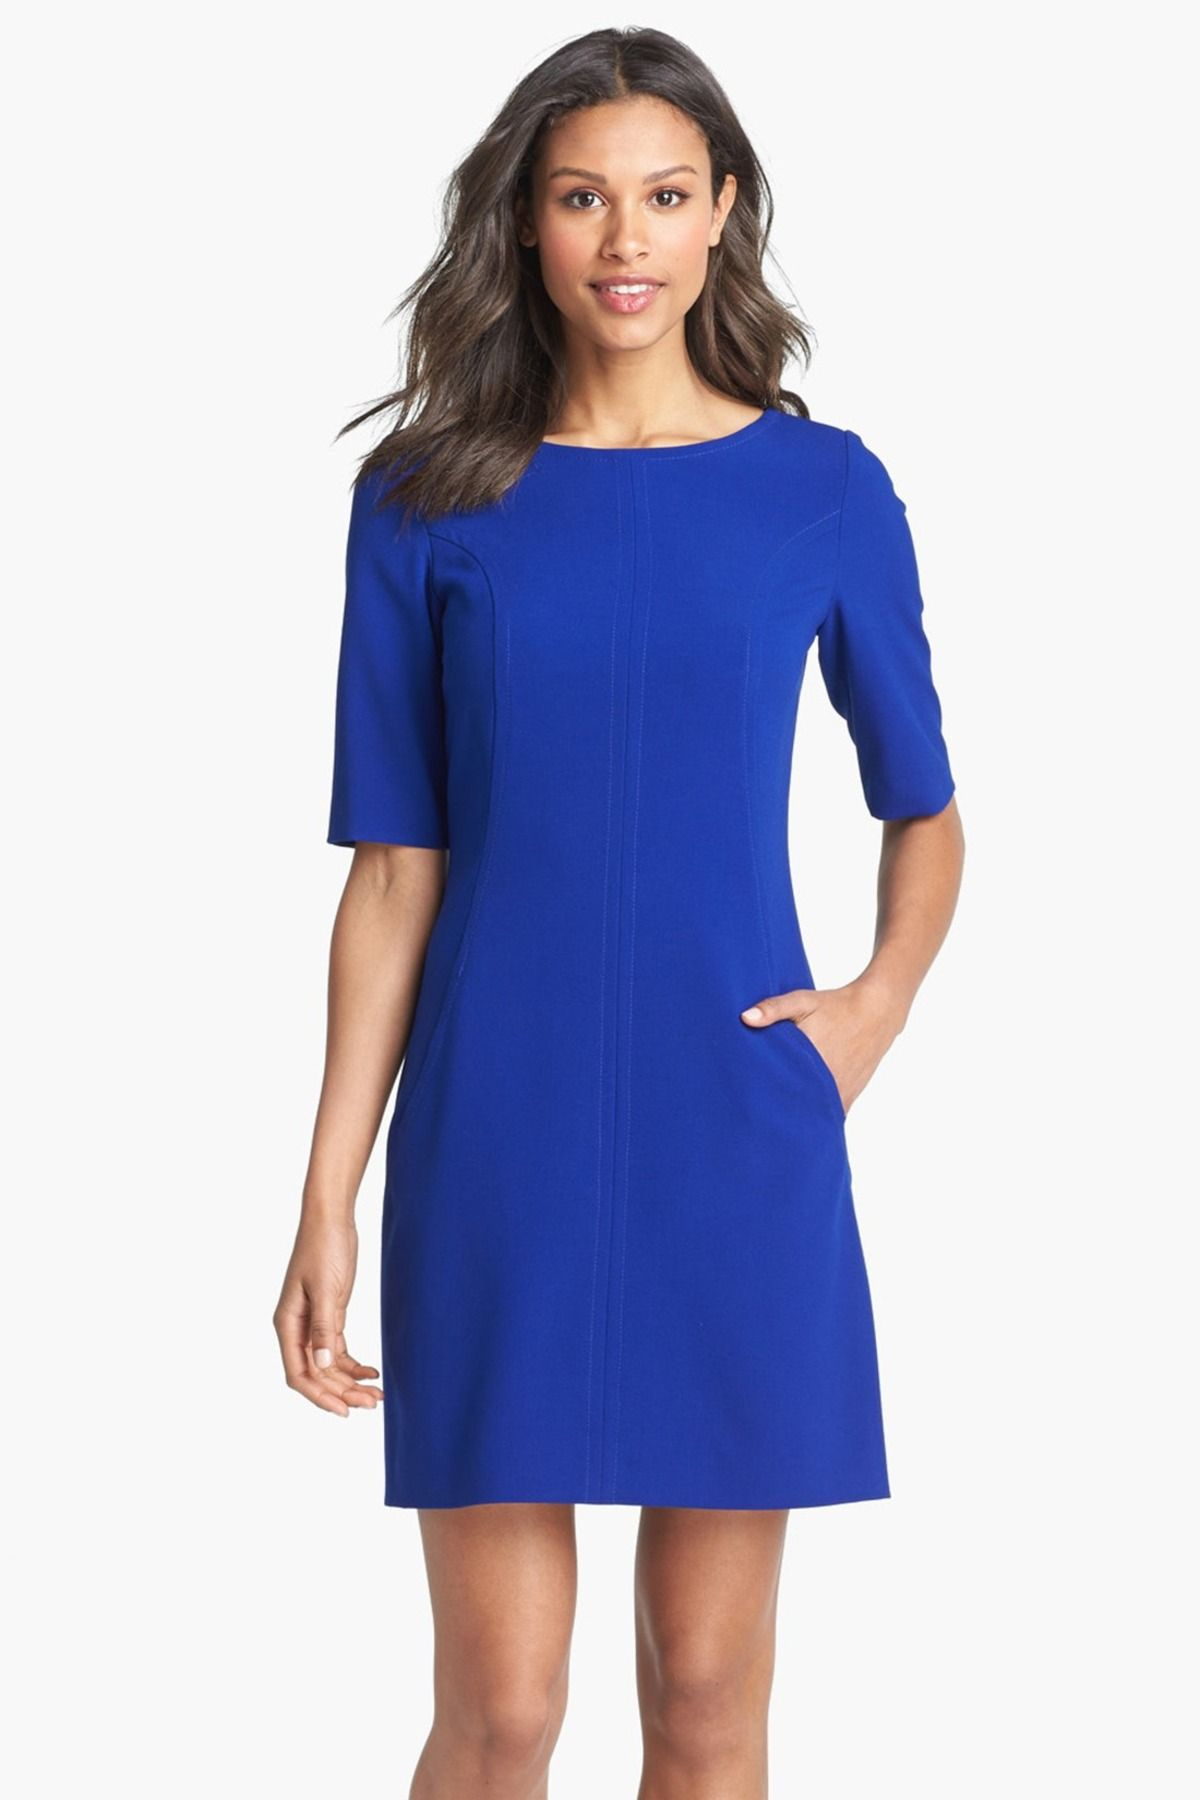 Seamed aline dress free shipping and products